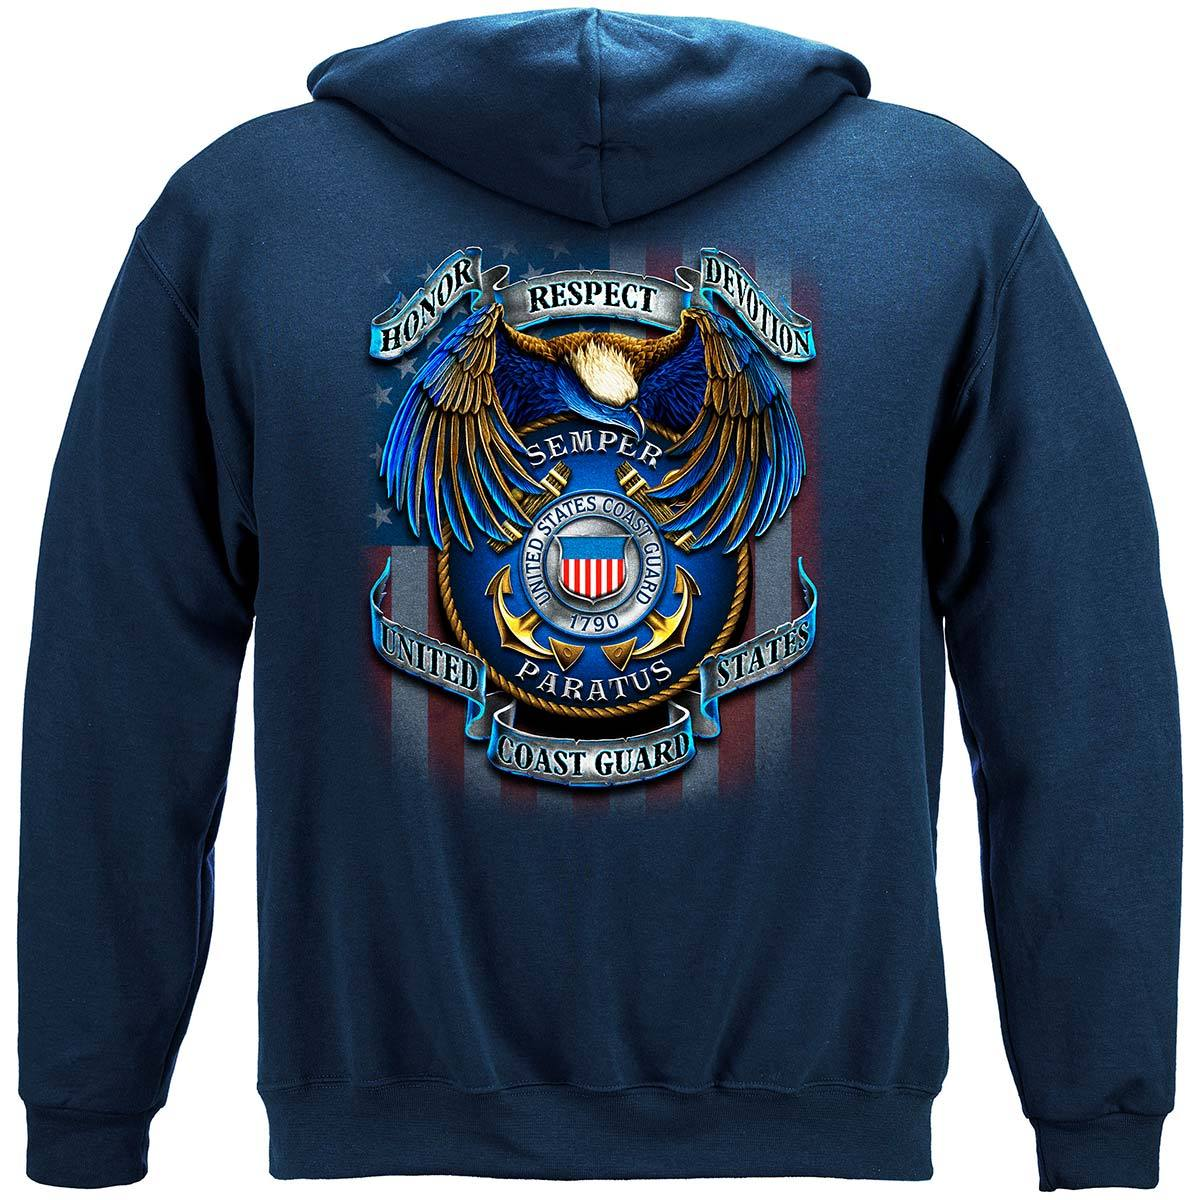 True Heroes Coast Guard Premium Hooded Sweat Shirt